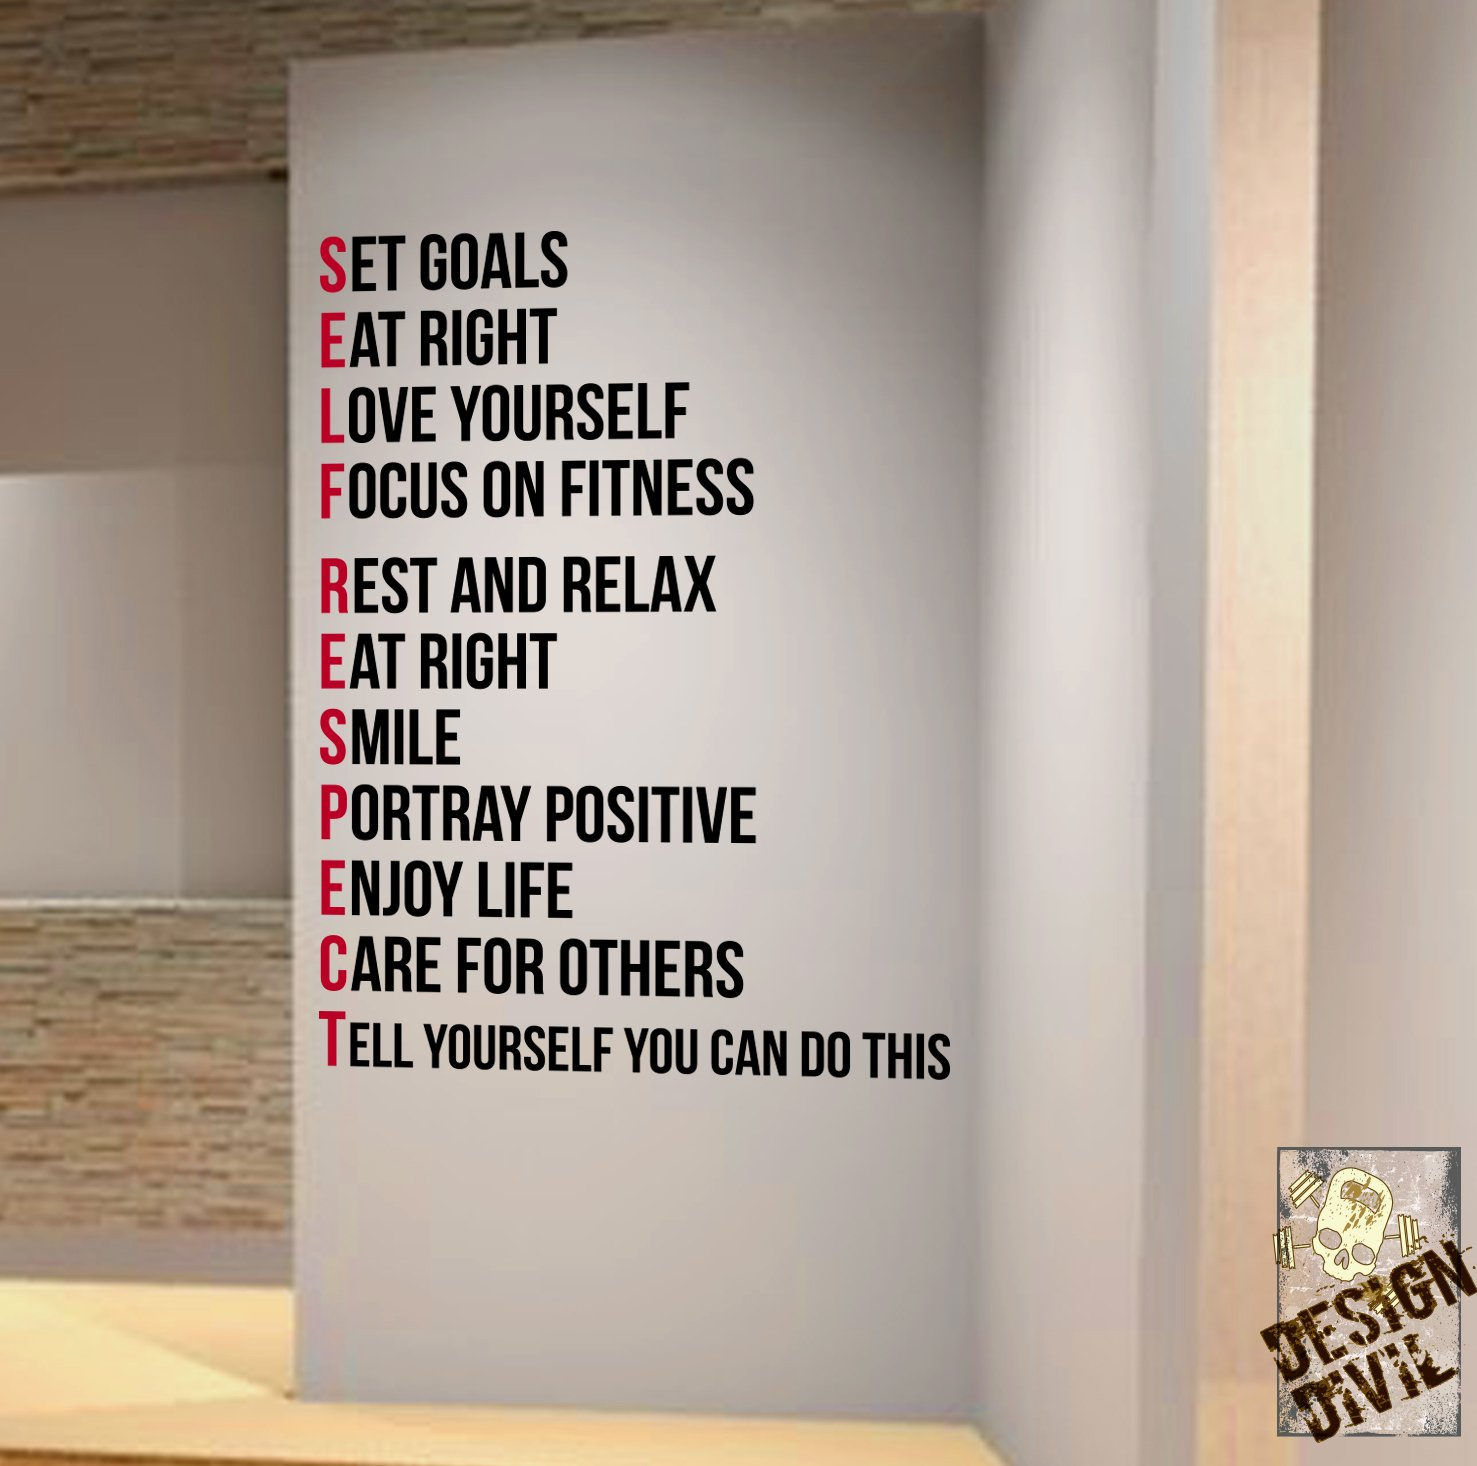 SELF RESPECT Gym Wall Decal Motivational QuoteHealth And Fitness - Wall decals motivational quotes